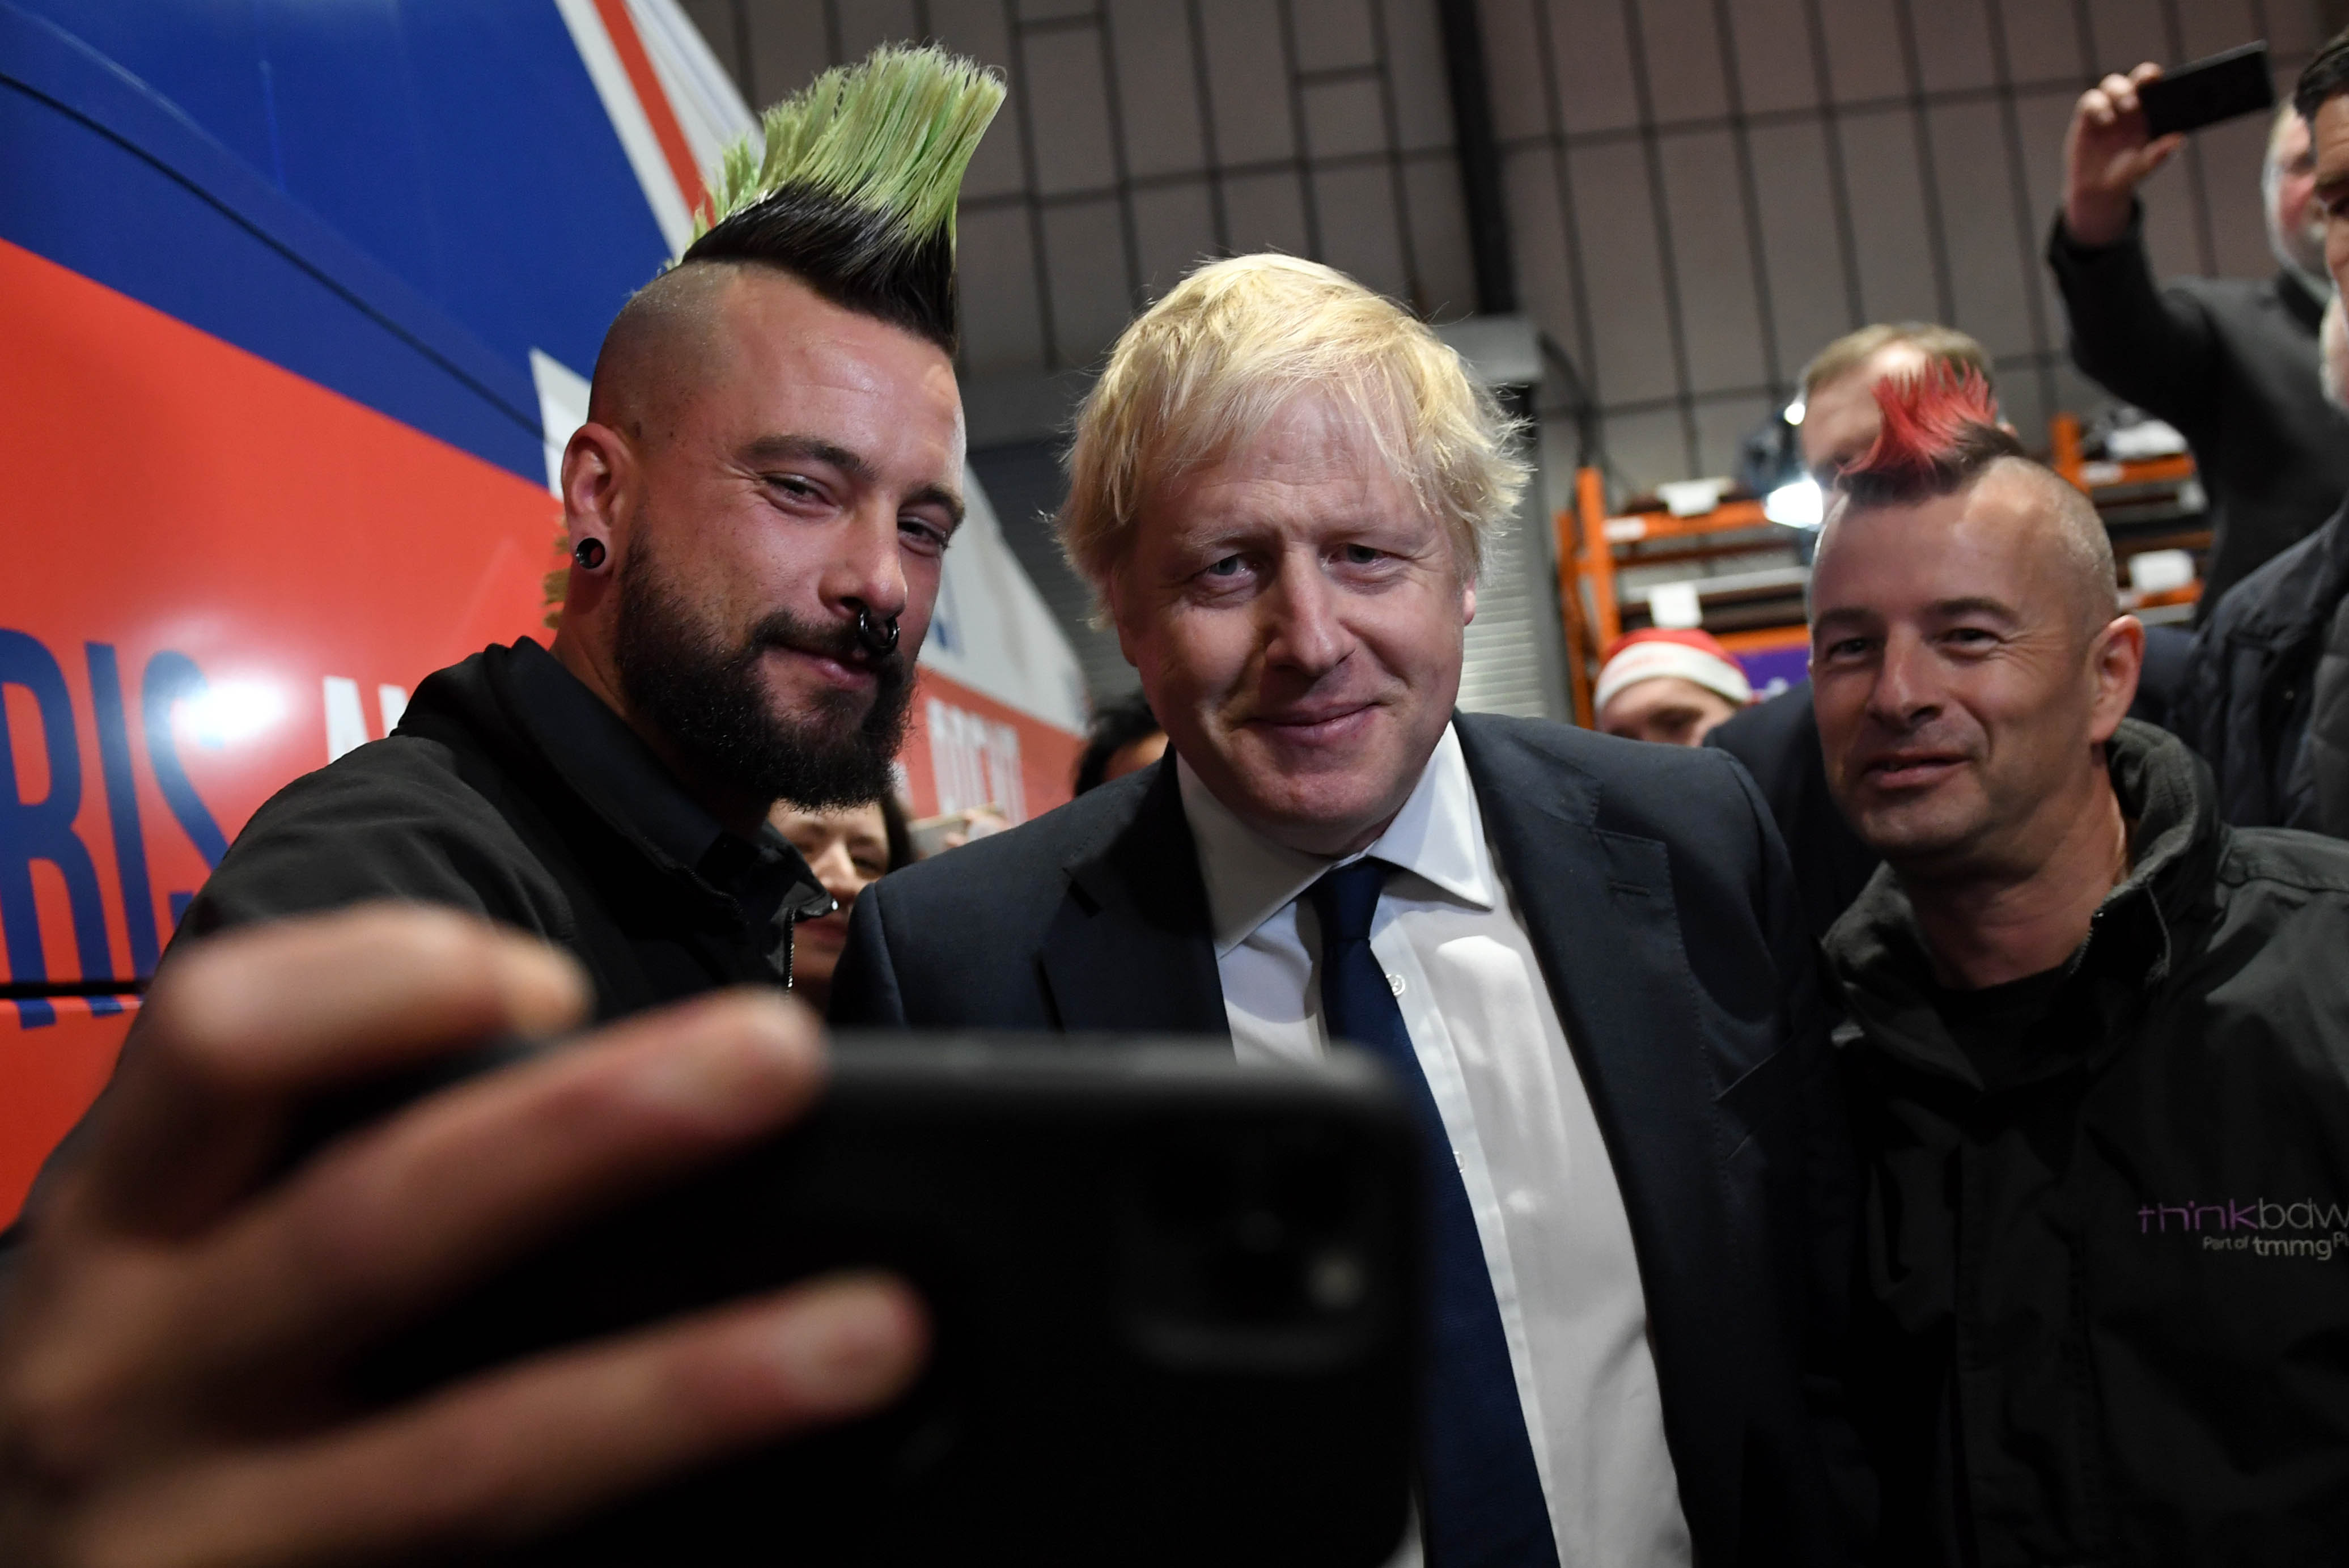 Prime Minister Boris Johnson poses for photos with members during a rally held at property marketing agency, Think BDW, Colchester, while on the General Election campaign trail.